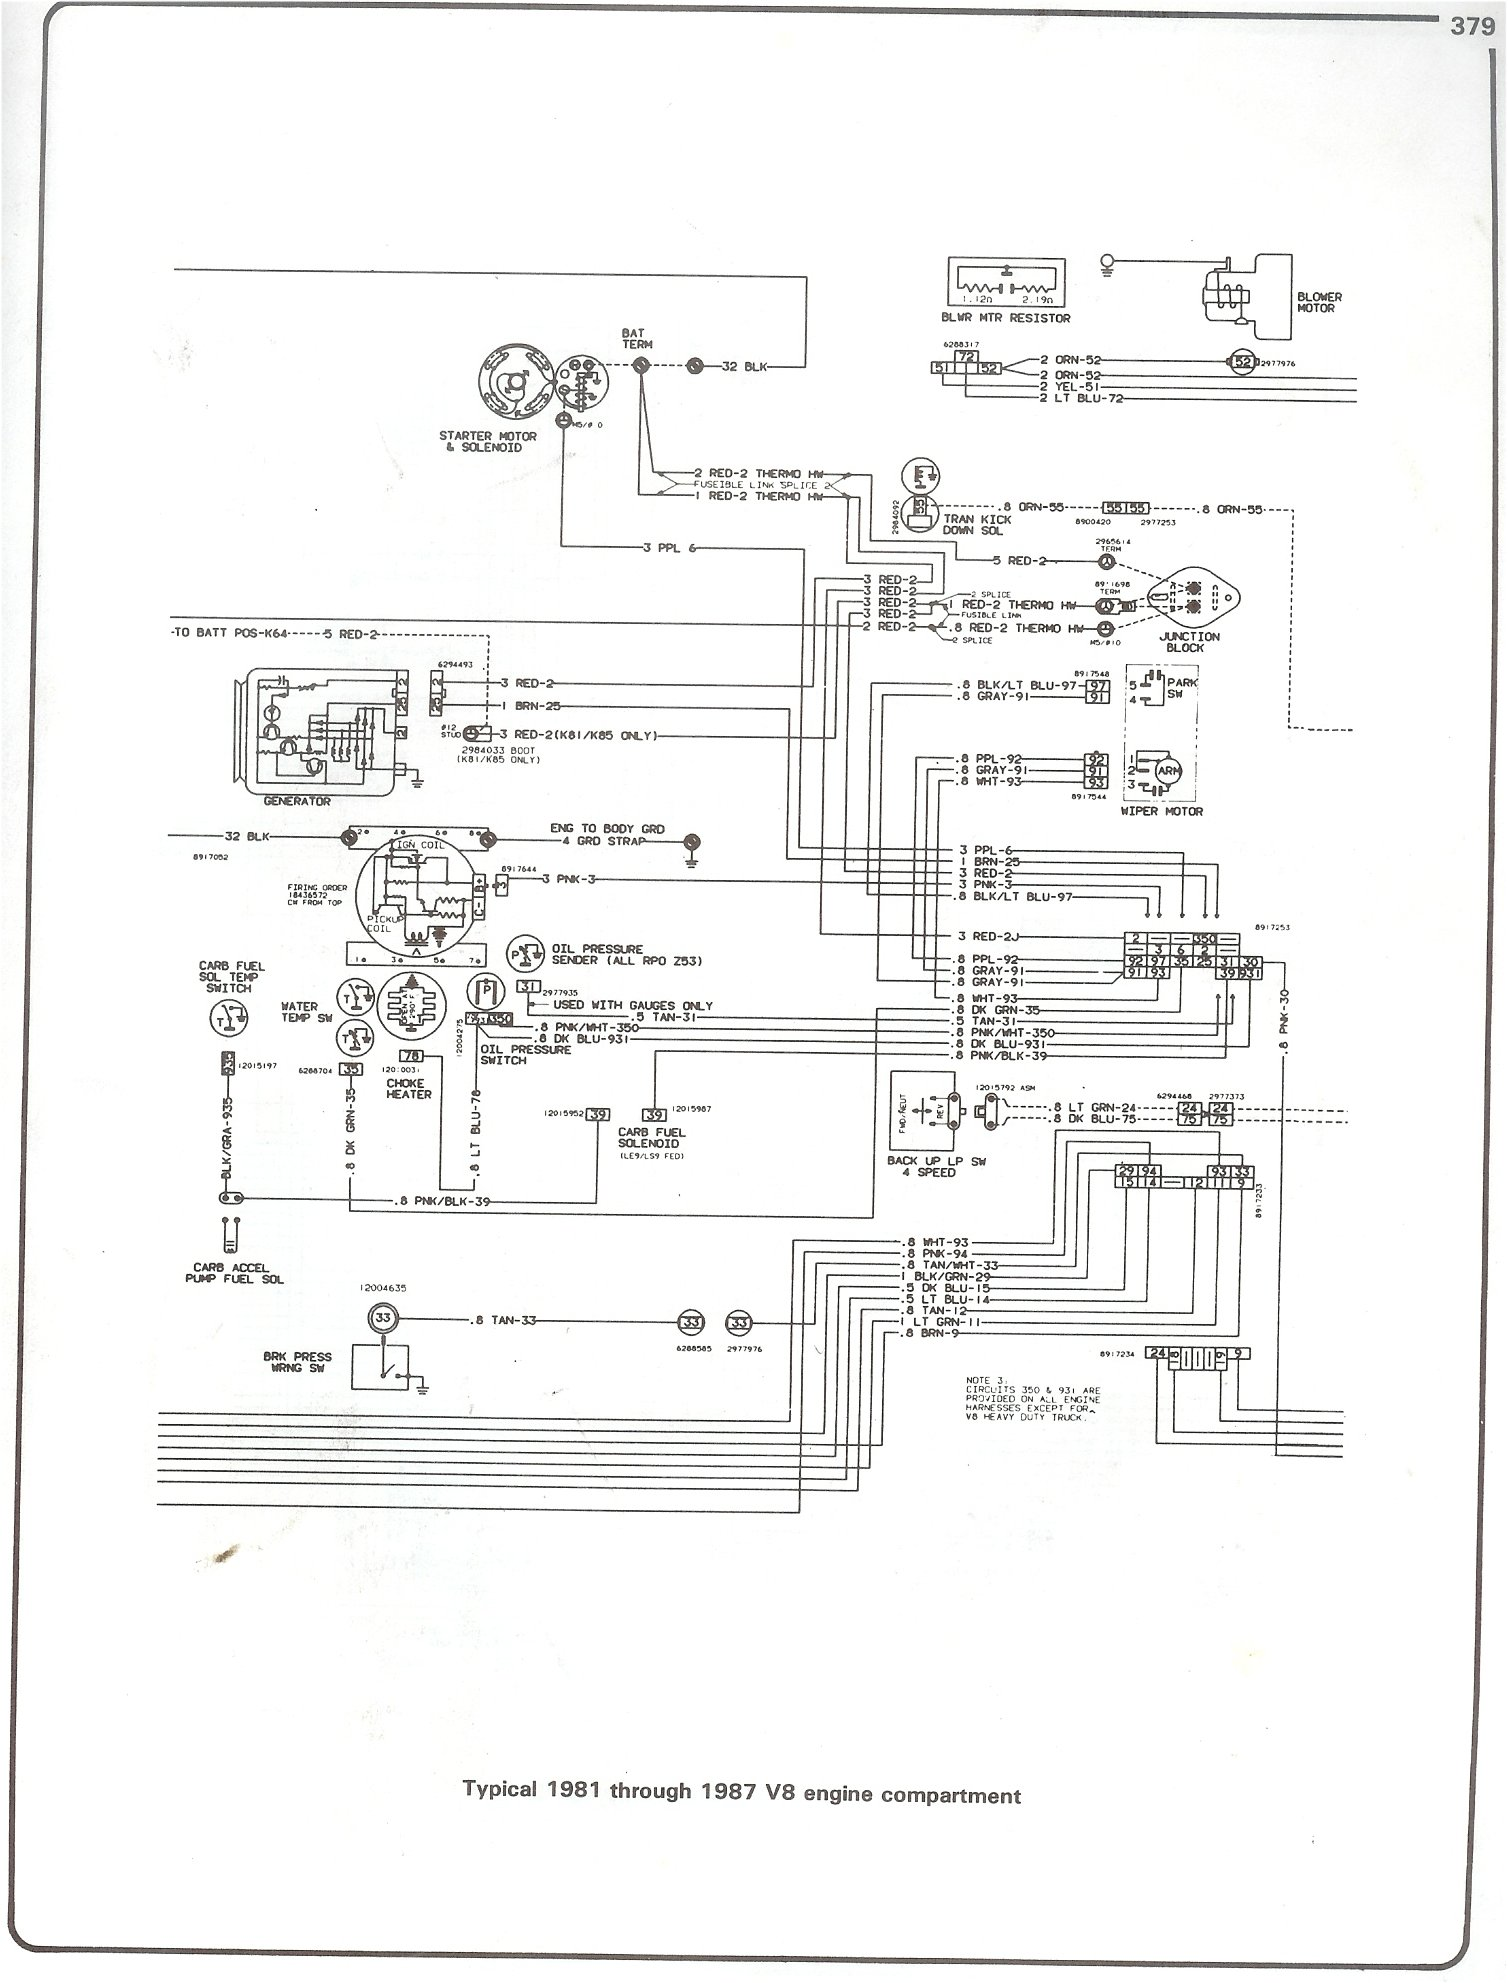 81 87_V8_engine complete 73 87 wiring diagrams 1985 chevy c10 fuse box diagram at gsmx.co